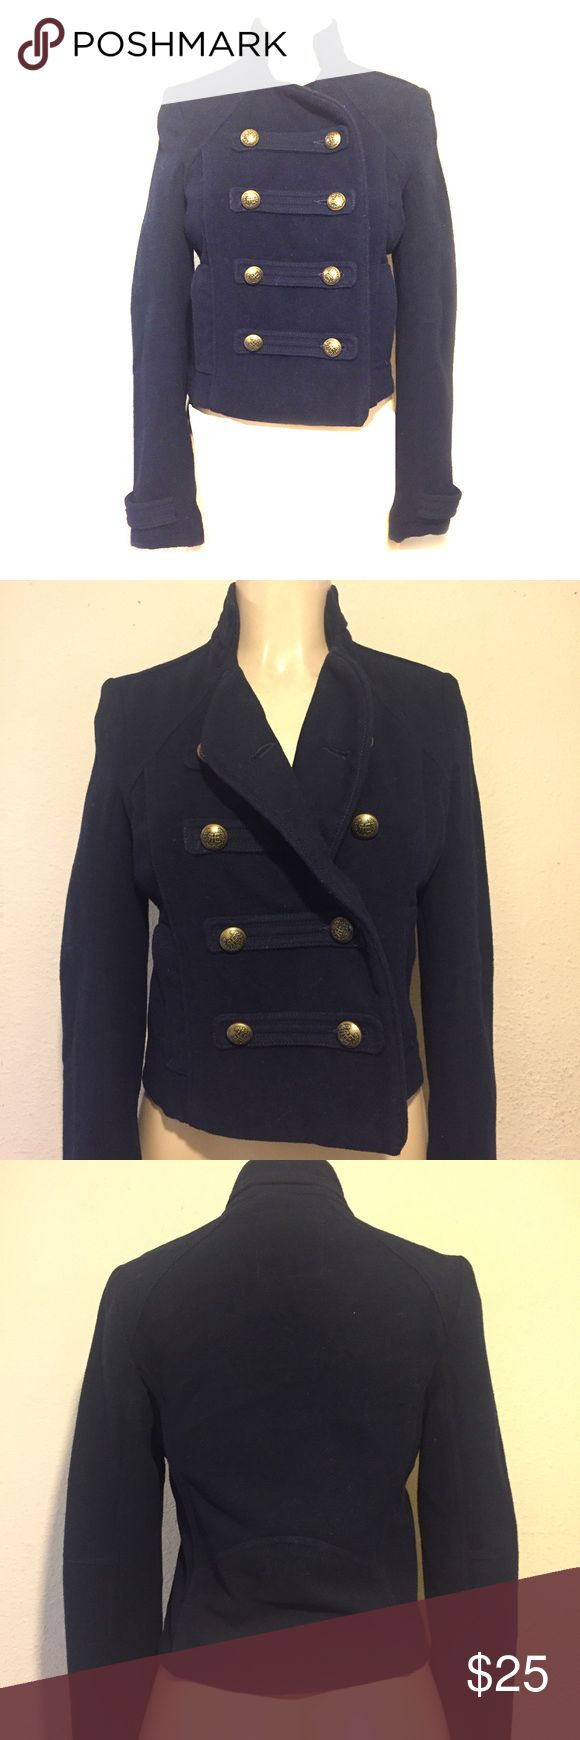 Selling this American Eagle Outfitters Coat on Poshmark! My username is: karenrivers. #shopmycloset #poshmark #fashion #shopping #style #forsale #American Eagle Outfitters #Jackets & Blazers